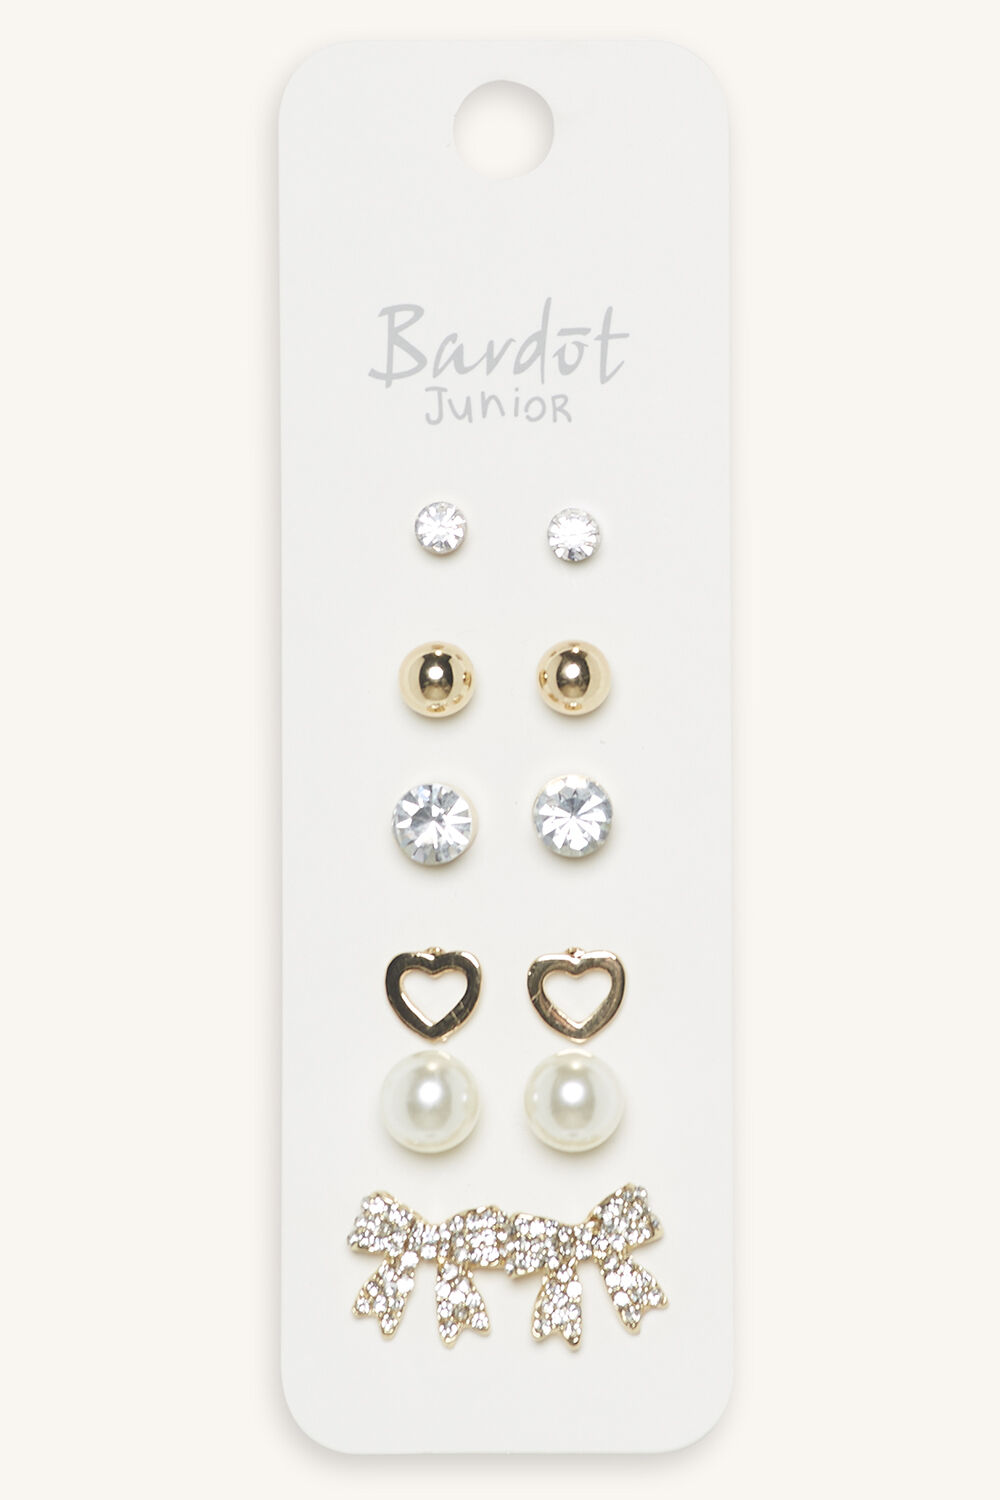 CLASSIC PRETTY EARRING STUD 6PK in colour HARVEST GOLD